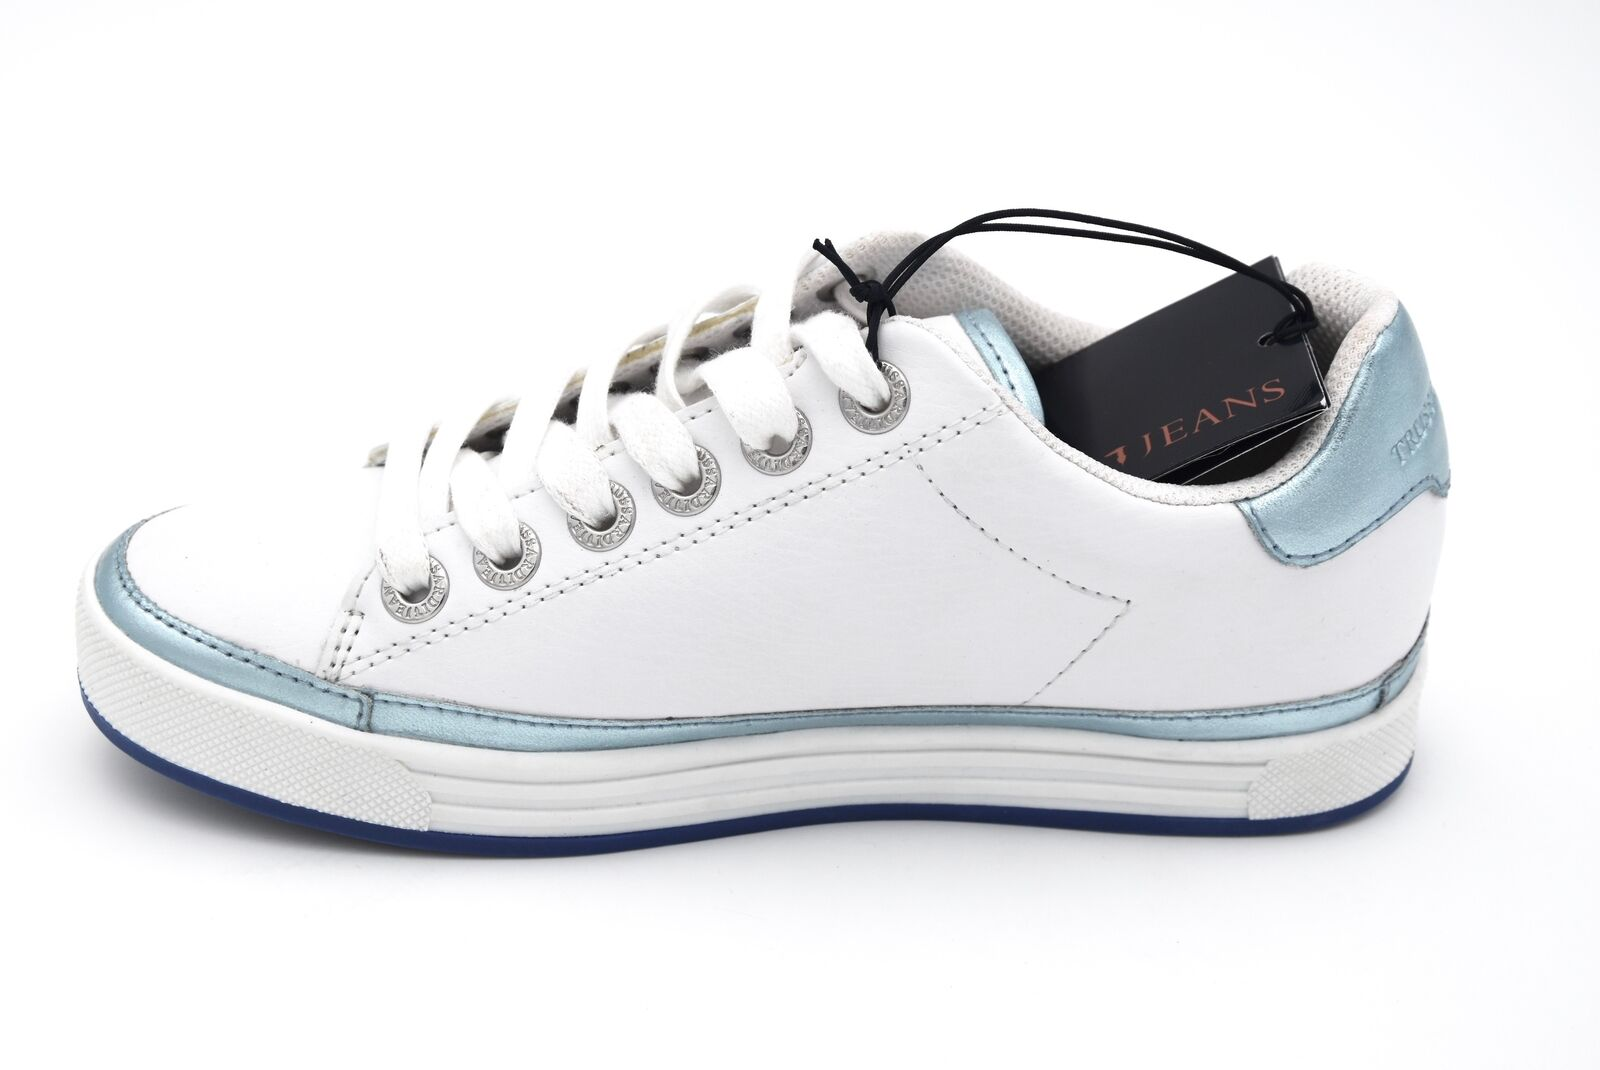 TRUSSARDI JEANS WOMAN baskets chaussures CASUAL FREE TIME LEATHER LEATHER LEATHER CODE 79A00130 4612af